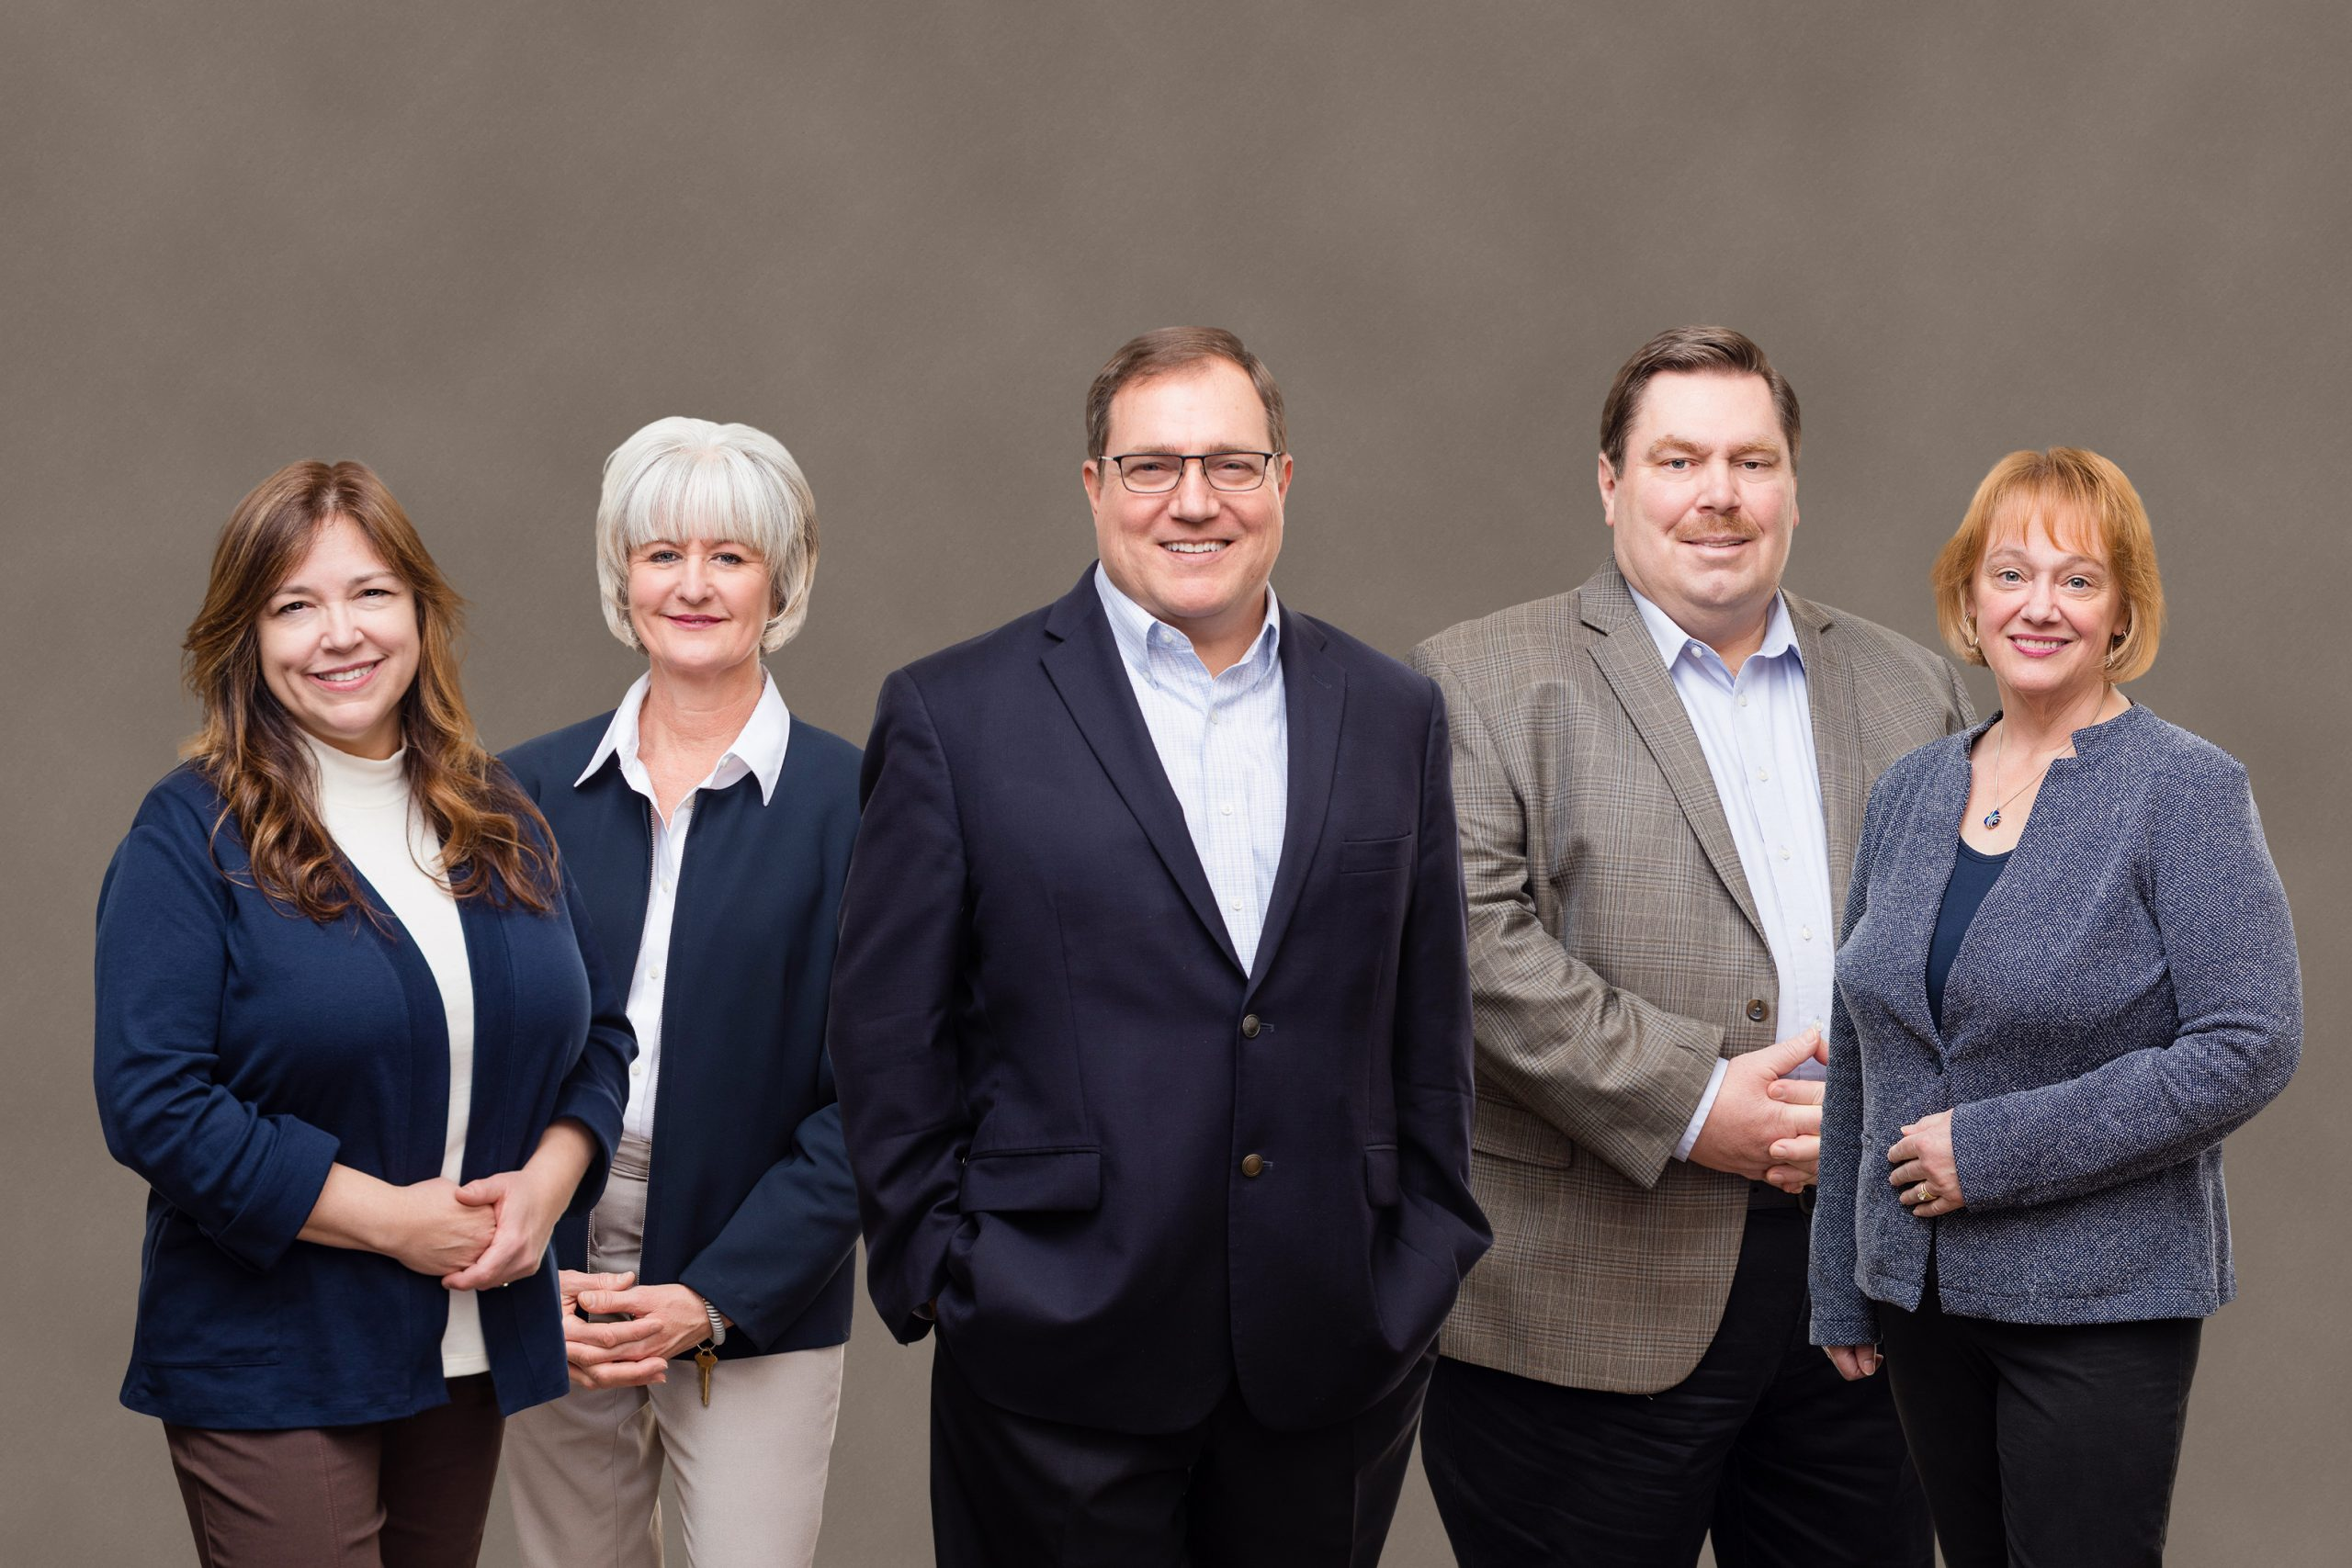 composite group photo for small team